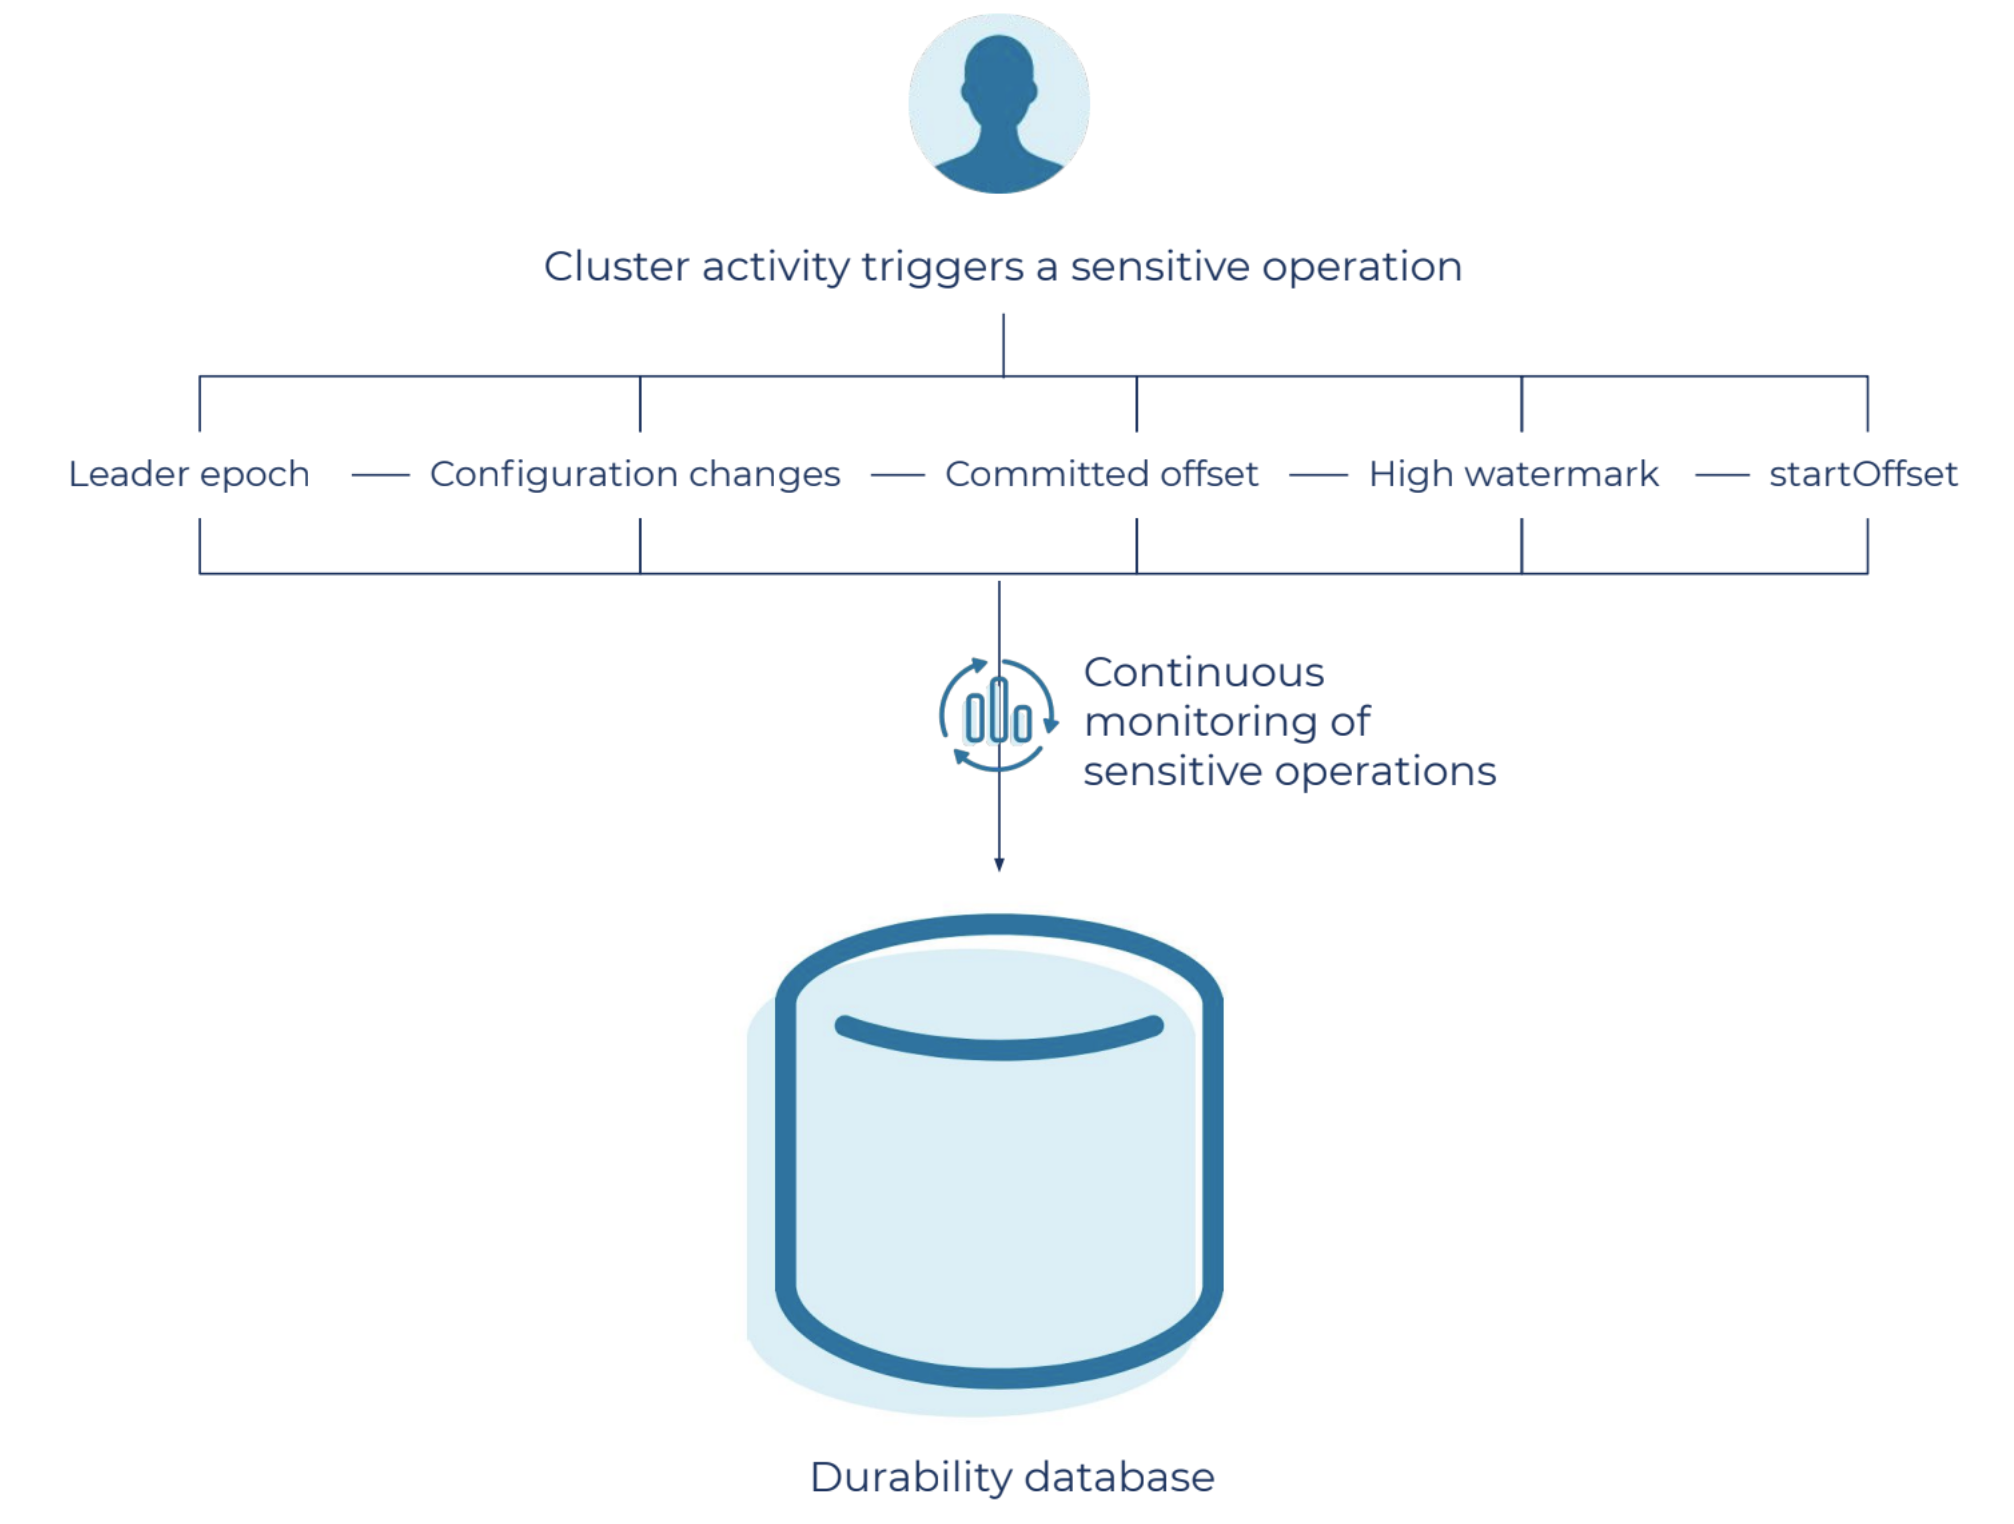 Cluster activity triggers a sensitive operation